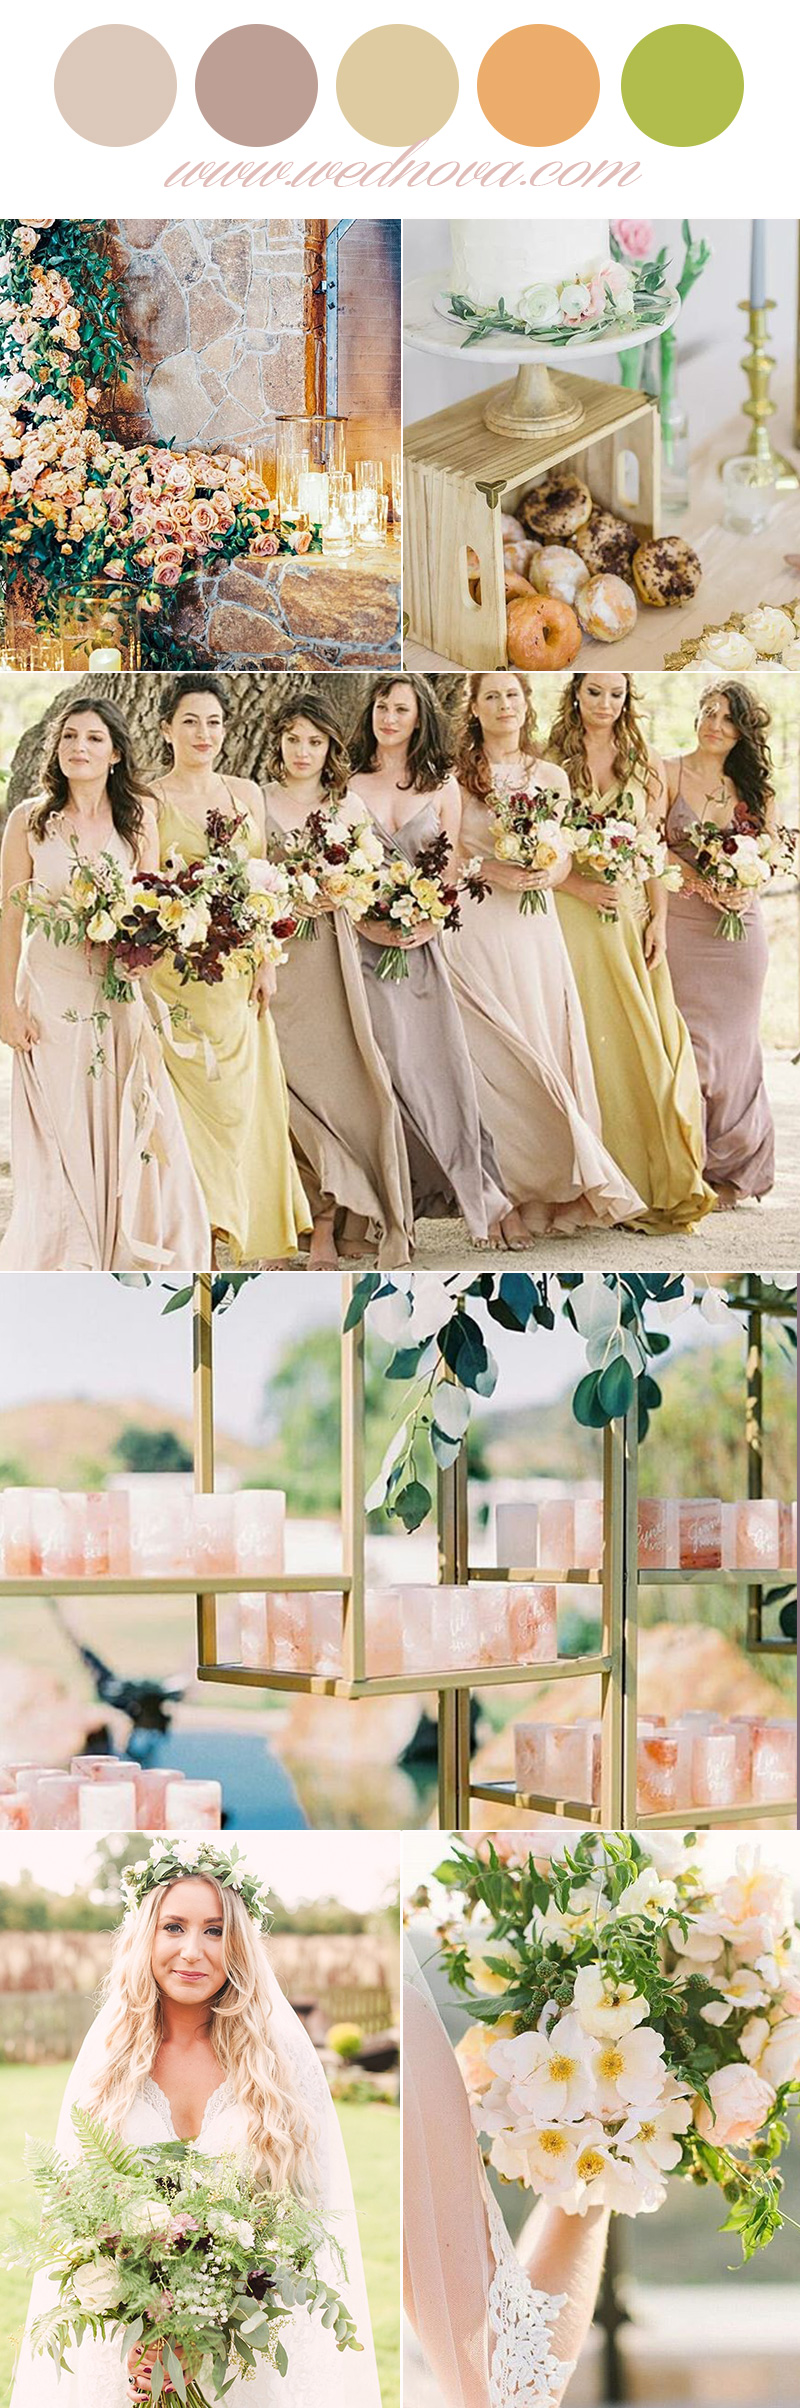 Summer Wedding Colors.Bridesmaid Dresses For Summer Wedding Colors Lixnet Ag